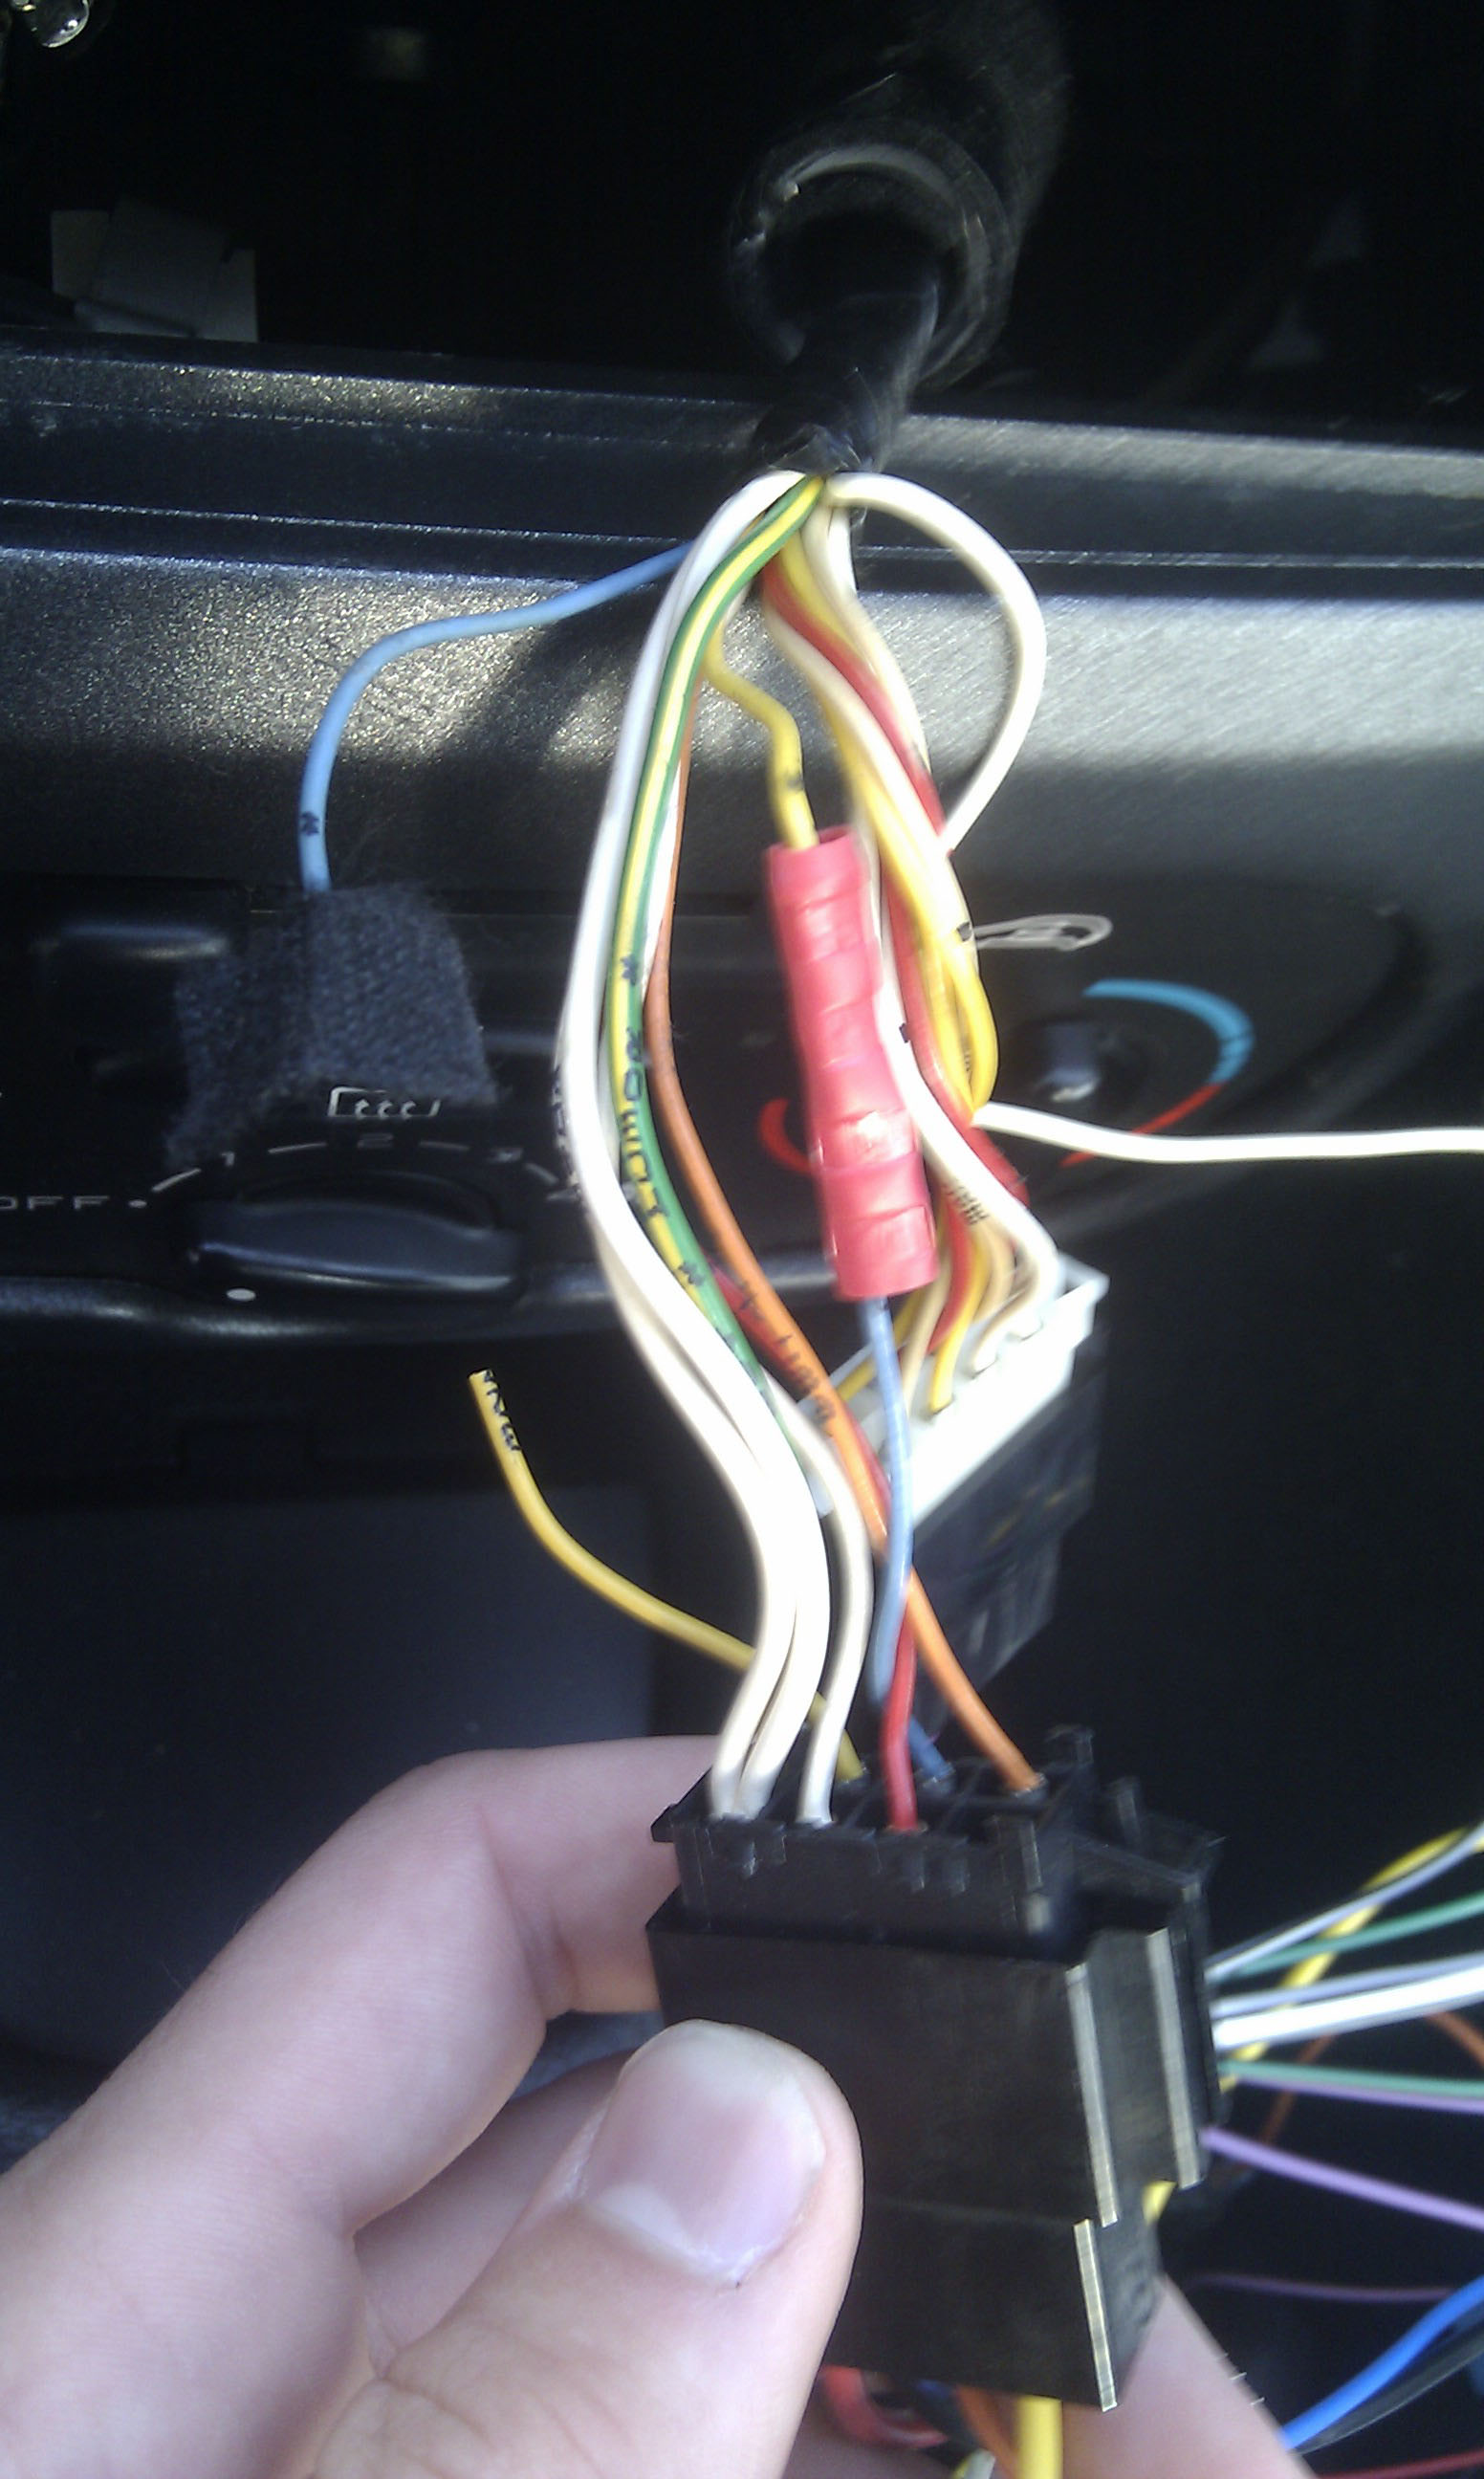 pioneer wiring diagram iso with Luidsprekers Vervangen 206cc T536 on LAND 20ROVER Car Radio Wiring Connector further Topic2875866 together with CTSAD00C as well Peugeot 206 Lx 2002 I Have Installed A Cd Player Which Works But It Doesnt R furthermore Ipad Usb Wiring Diagram.